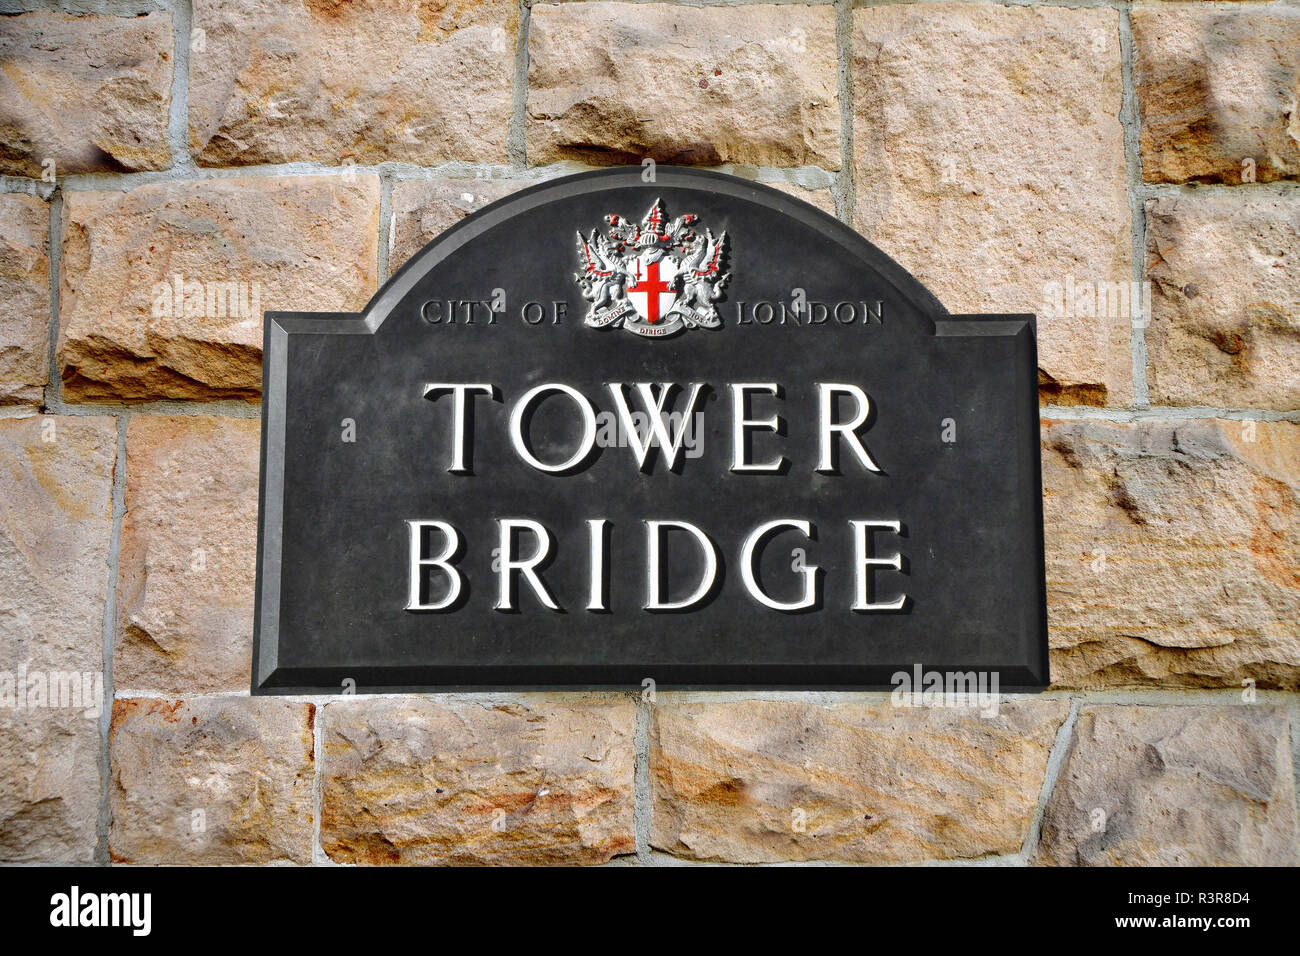 Tower Bridge sign in London in the background a sandstone wall - Stock Image